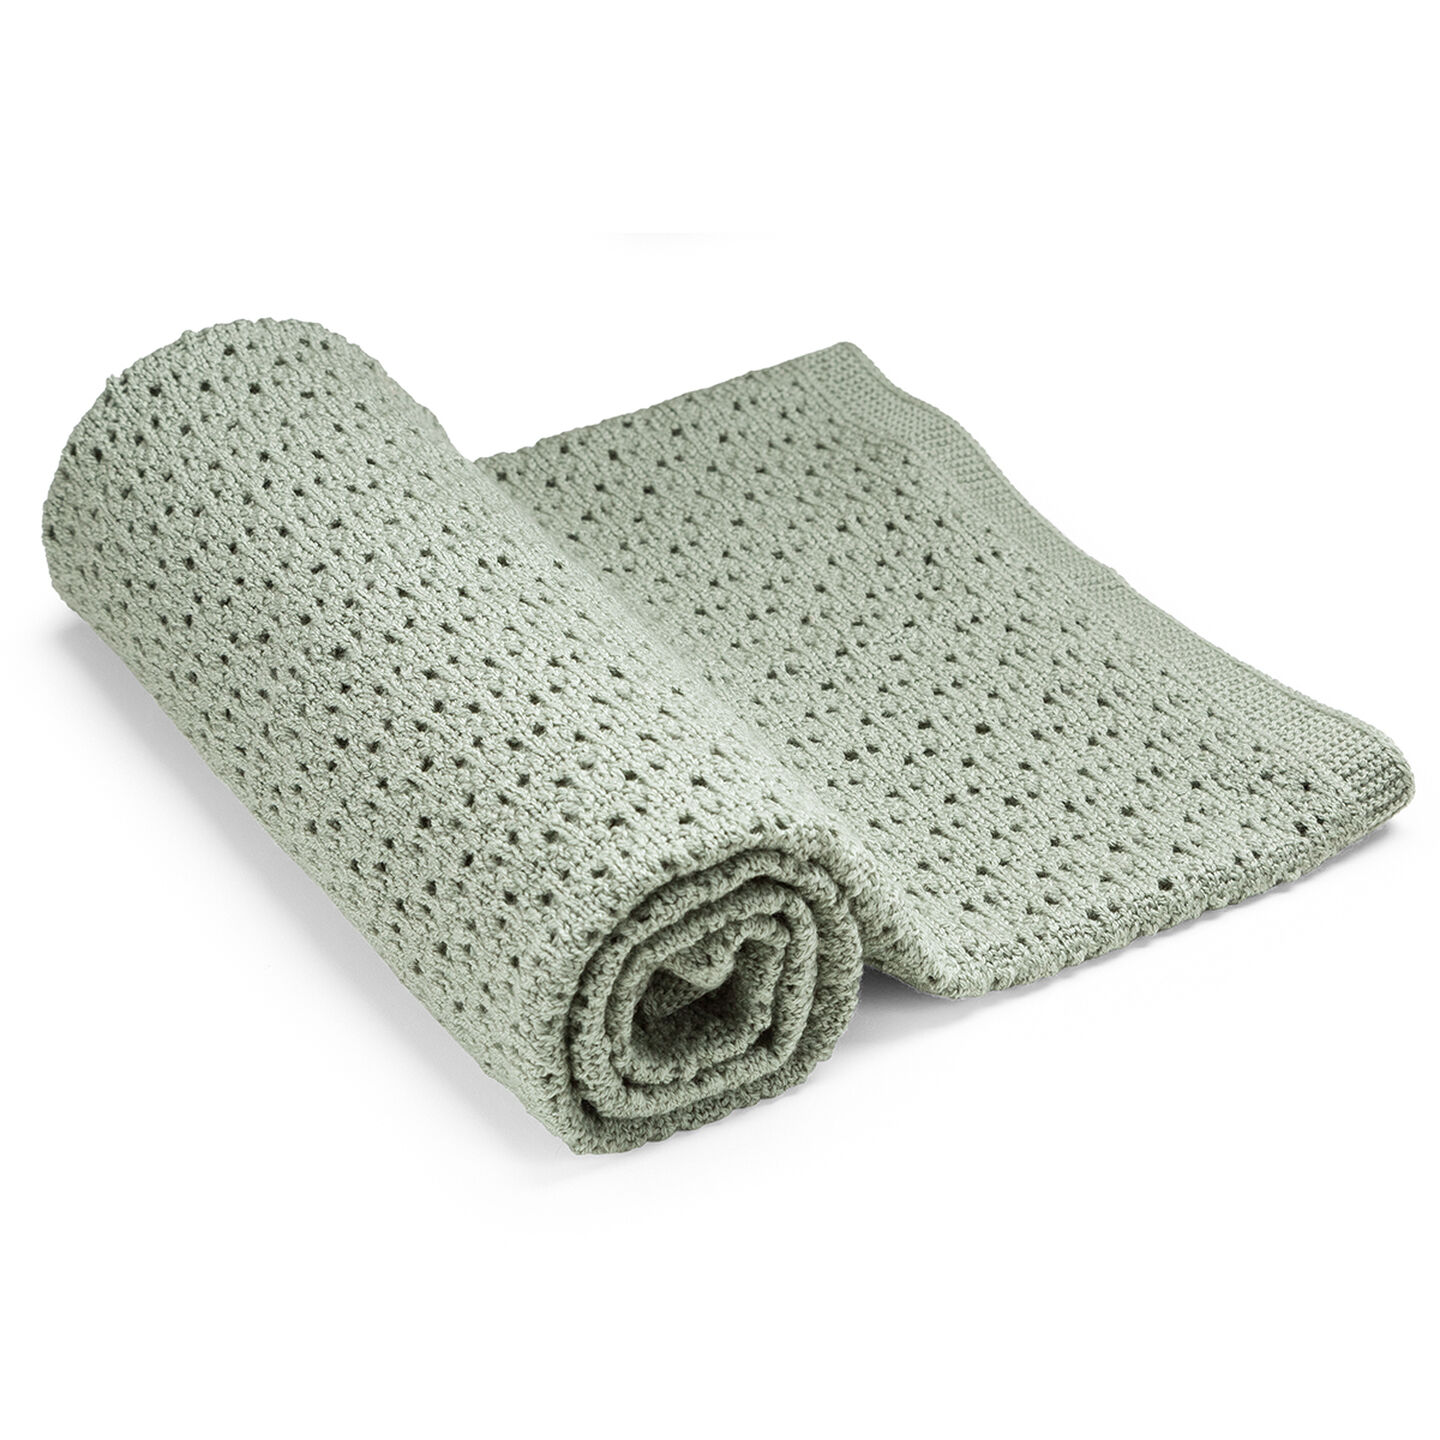 Stokke® Blanket Merino Wool Green, Green, mainview